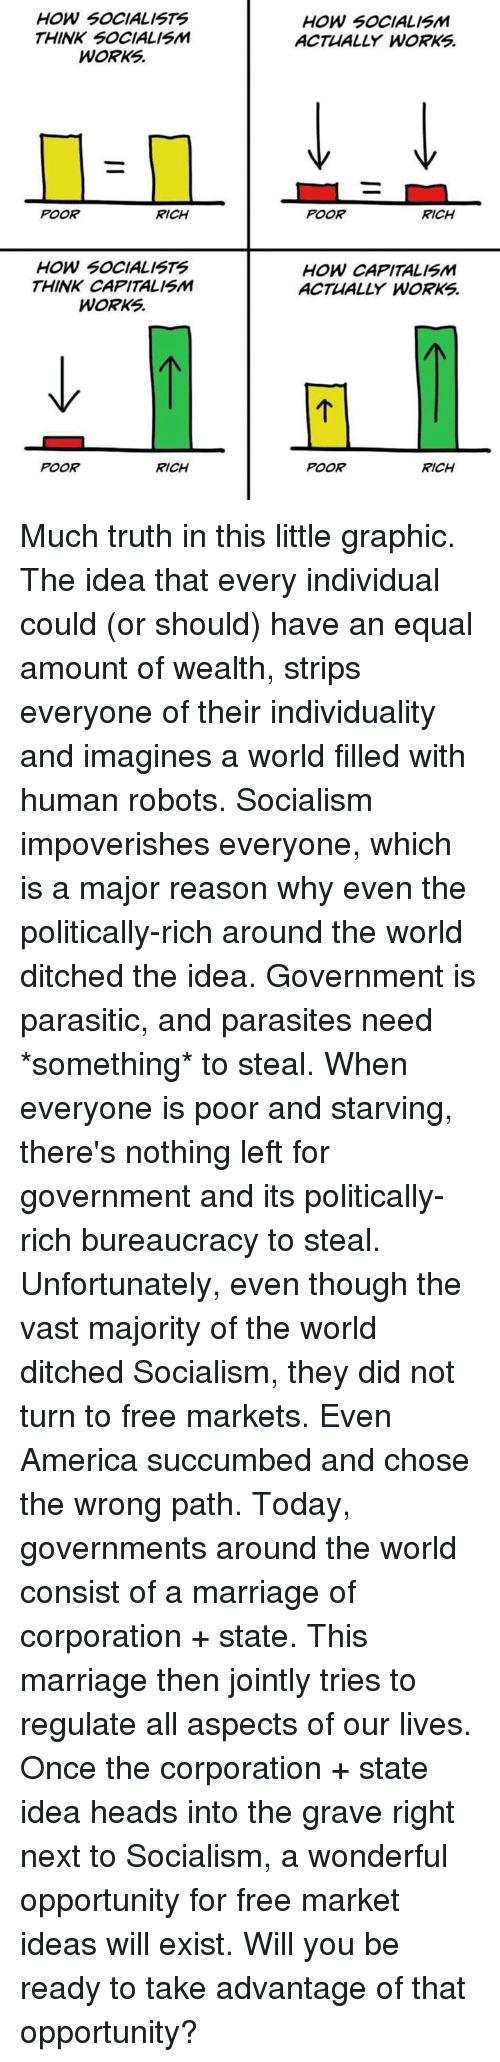 America, Dank, and Marriage: HOW SOCIALISTS  THINK SOCIALISM  WORKS.  HOW SOCIALISM  ACTUALLY WORKS.  POOR  RICH  POOR  RICH  HOW SOCIALISTS  THINK CAPITALISM  WORKS  HOW CAPITALISM  ACTUALLY WORKS  POOR  RICH  POOR  RICH Much truth in this little graphic.  The idea that every individual could (or should) have an equal amount of wealth, strips everyone of their individuality and imagines a world filled with human robots.  Socialism impoverishes everyone, which is a major reason why even the politically-rich around the world ditched the idea.   Government is parasitic, and parasites need *something* to steal. When everyone is poor and starving, there's nothing left for government and its politically-rich bureaucracy to steal.  Unfortunately, even though the vast majority of the world ditched Socialism, they did not turn to free markets. Even America succumbed and chose the wrong path.  Today, governments around the world consist of a marriage of corporation + state. This marriage then jointly tries to regulate all aspects of our lives.  Once the corporation + state idea heads into the grave right next to Socialism, a wonderful opportunity for free market ideas will exist.  Will you be ready to take advantage of that opportunity?